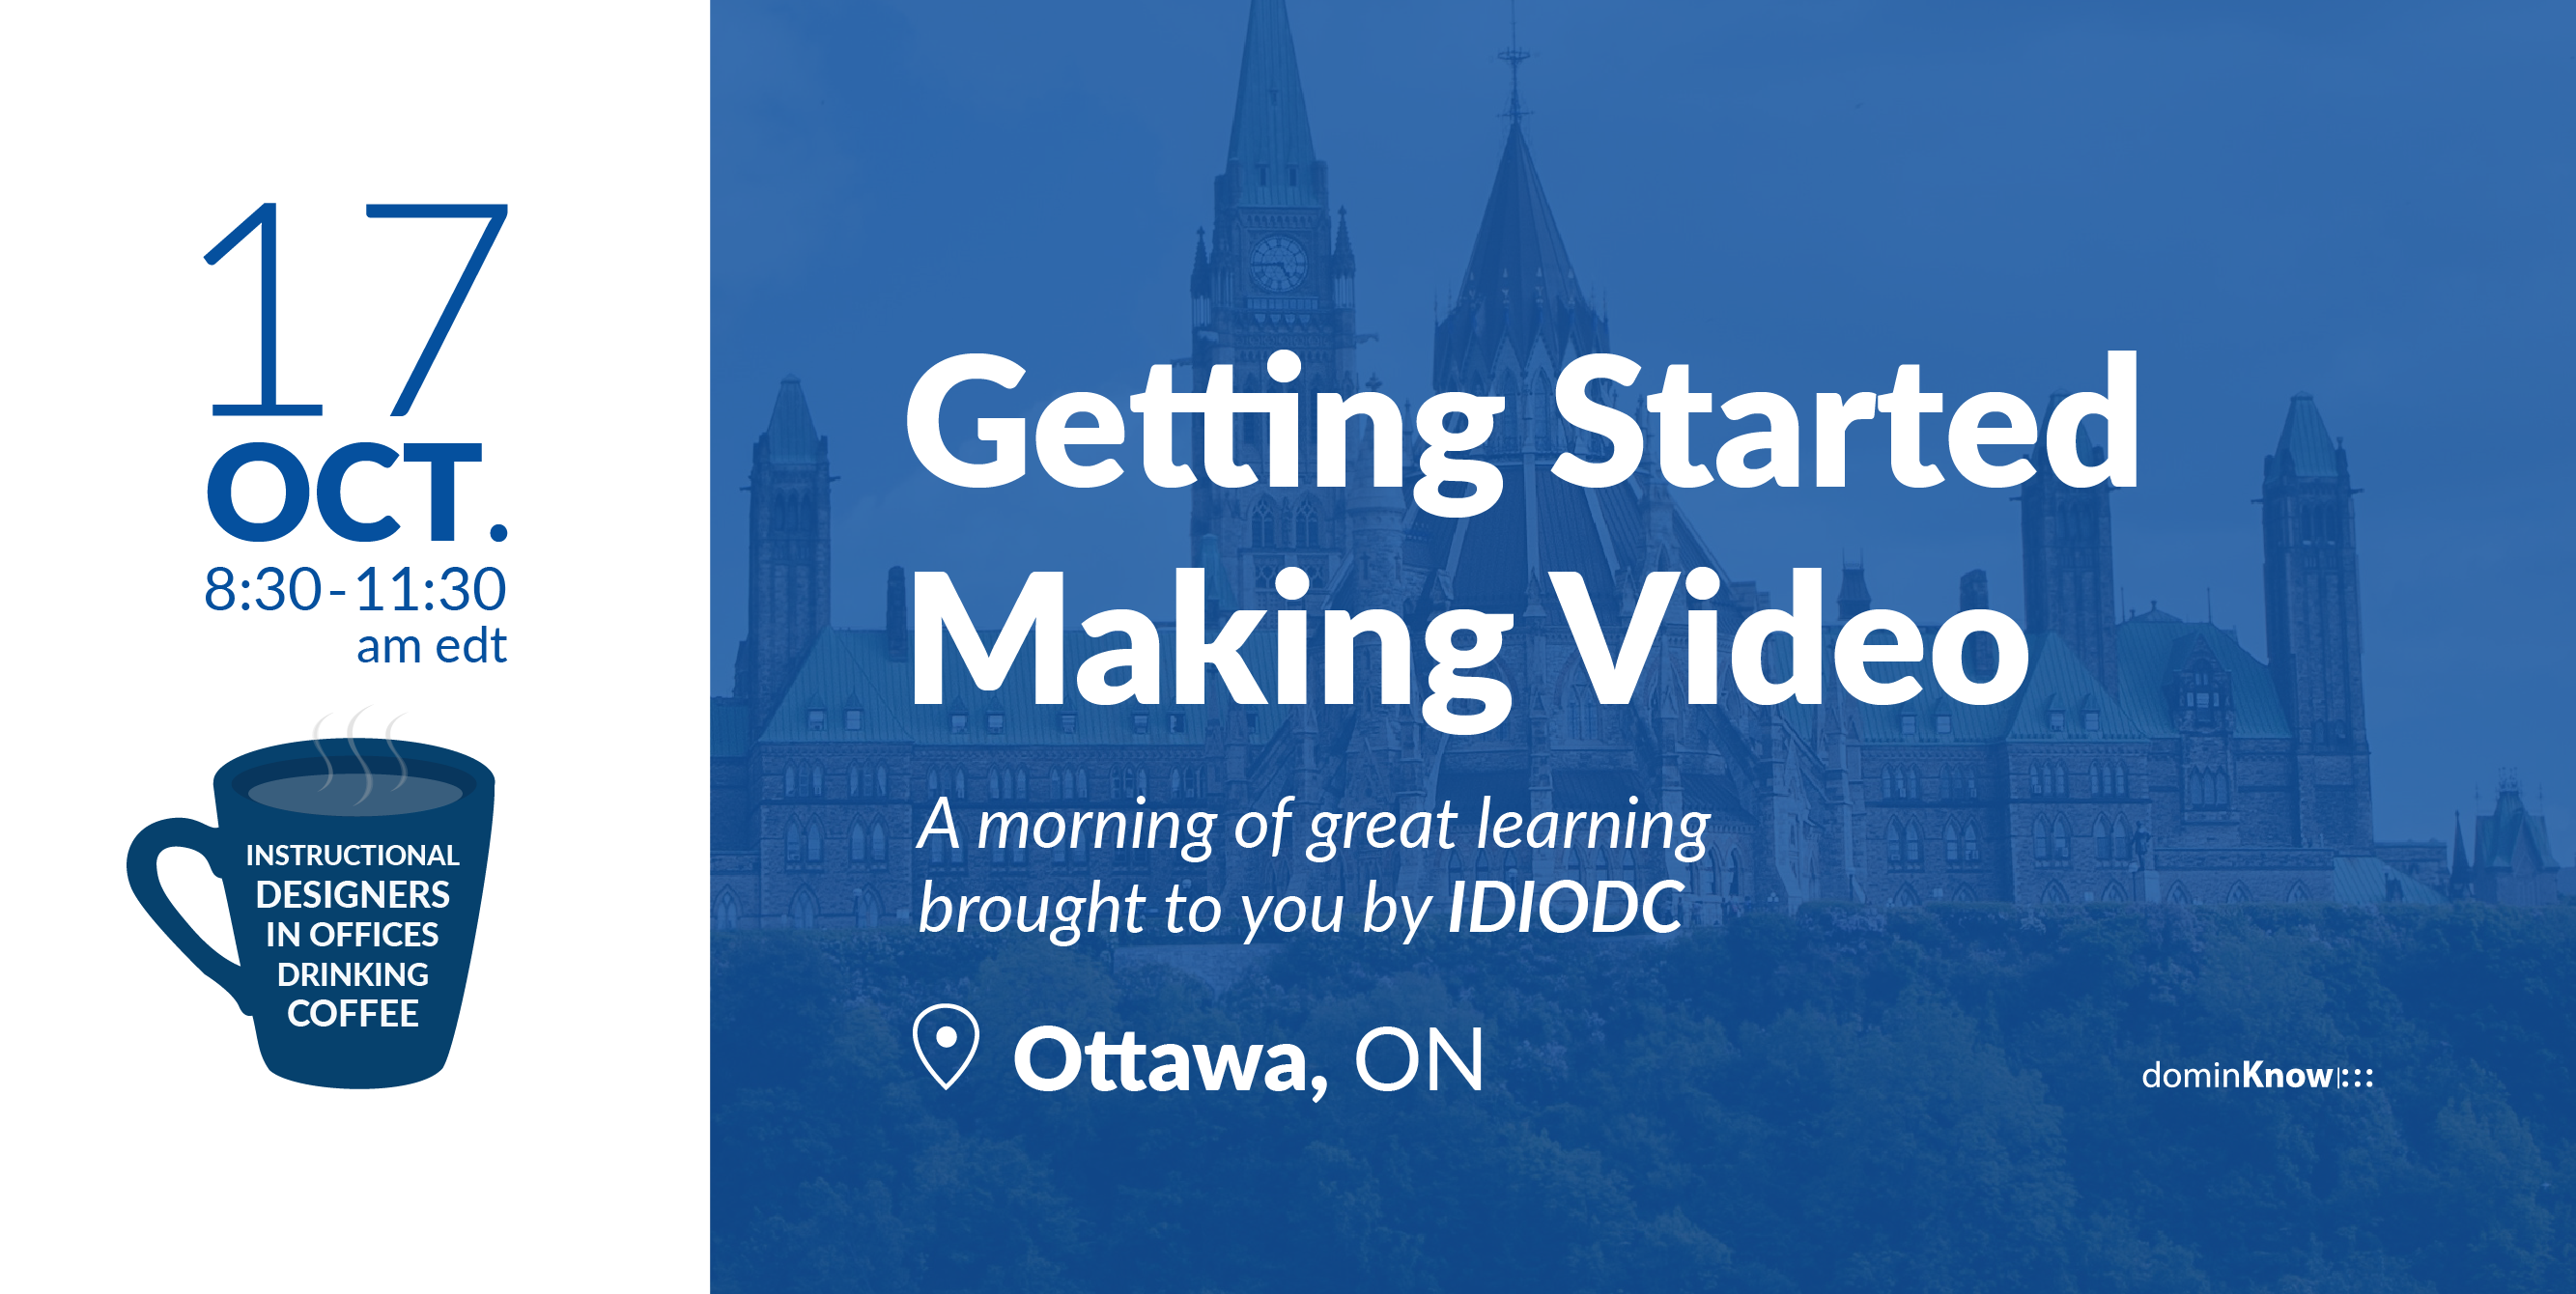 IDIODC hosts it's second Ottawa meetup event, this time around video production for eLearning.